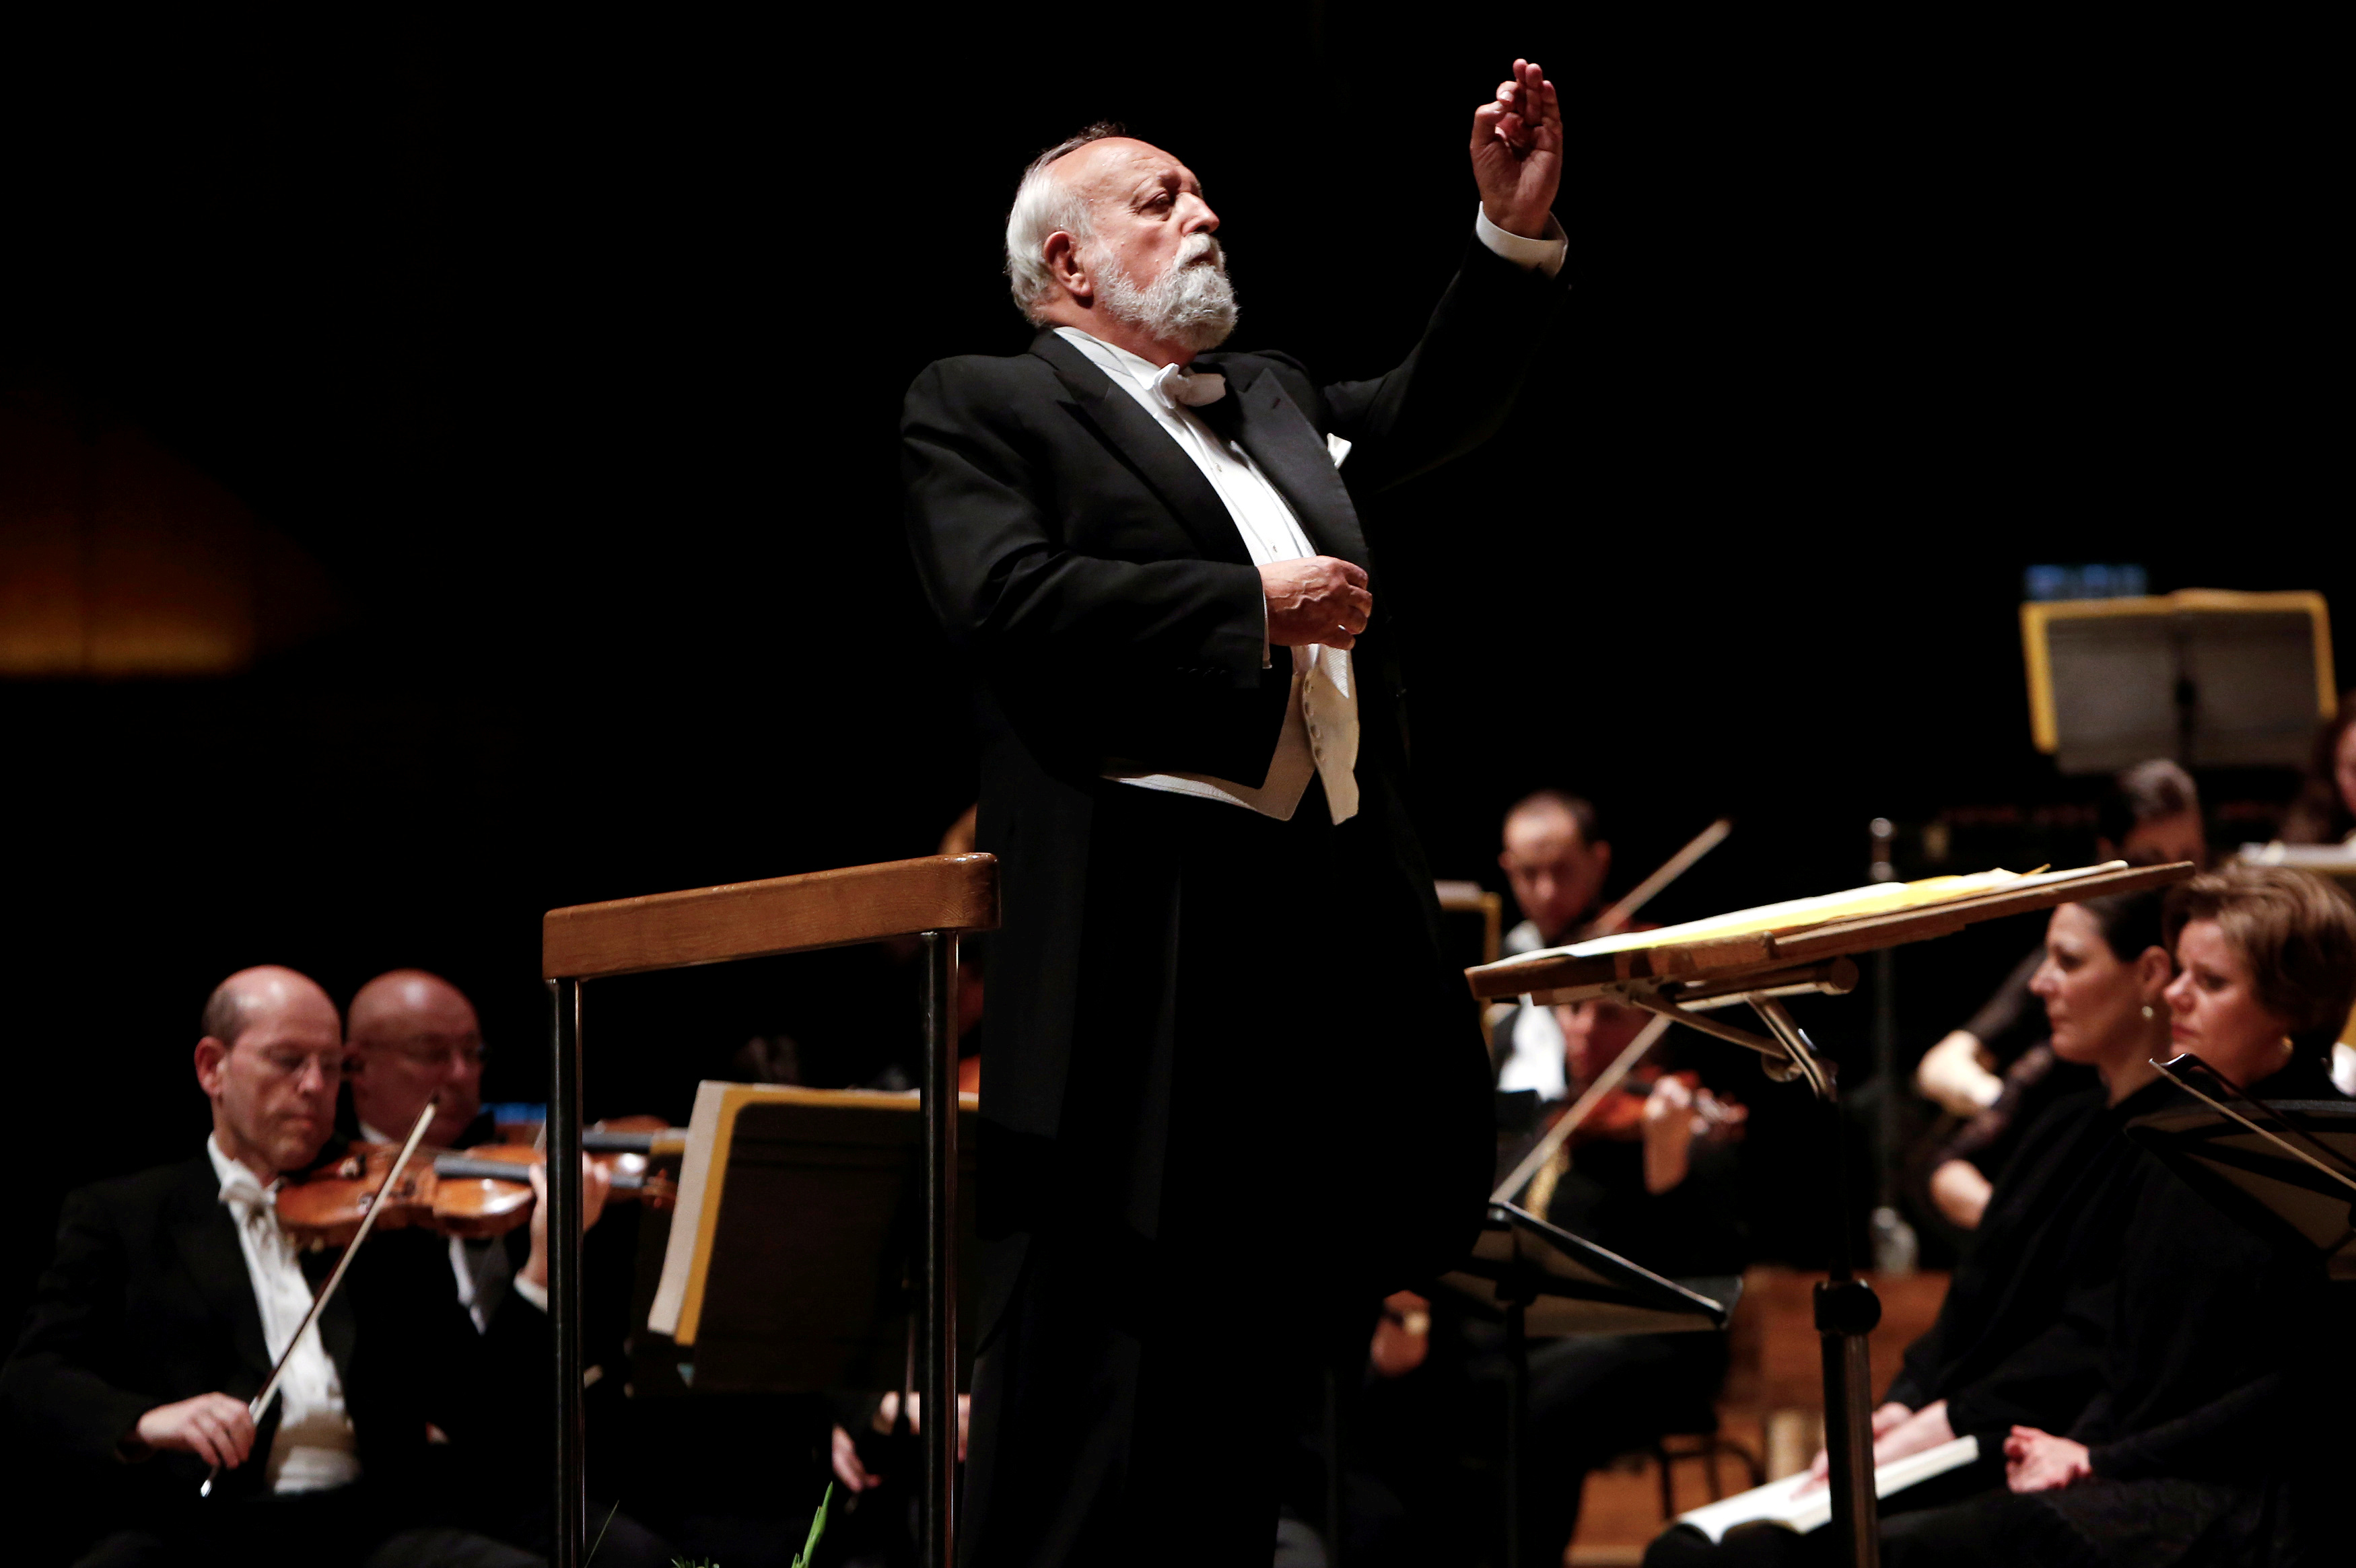 FILE PHOTO: Polish composer Krzysztof Penderecki conducts the Israel Philharmonic Orchestra during a performance of his Polish Requiem in Tel Aviv February 12, 2014. Photo: Reuters